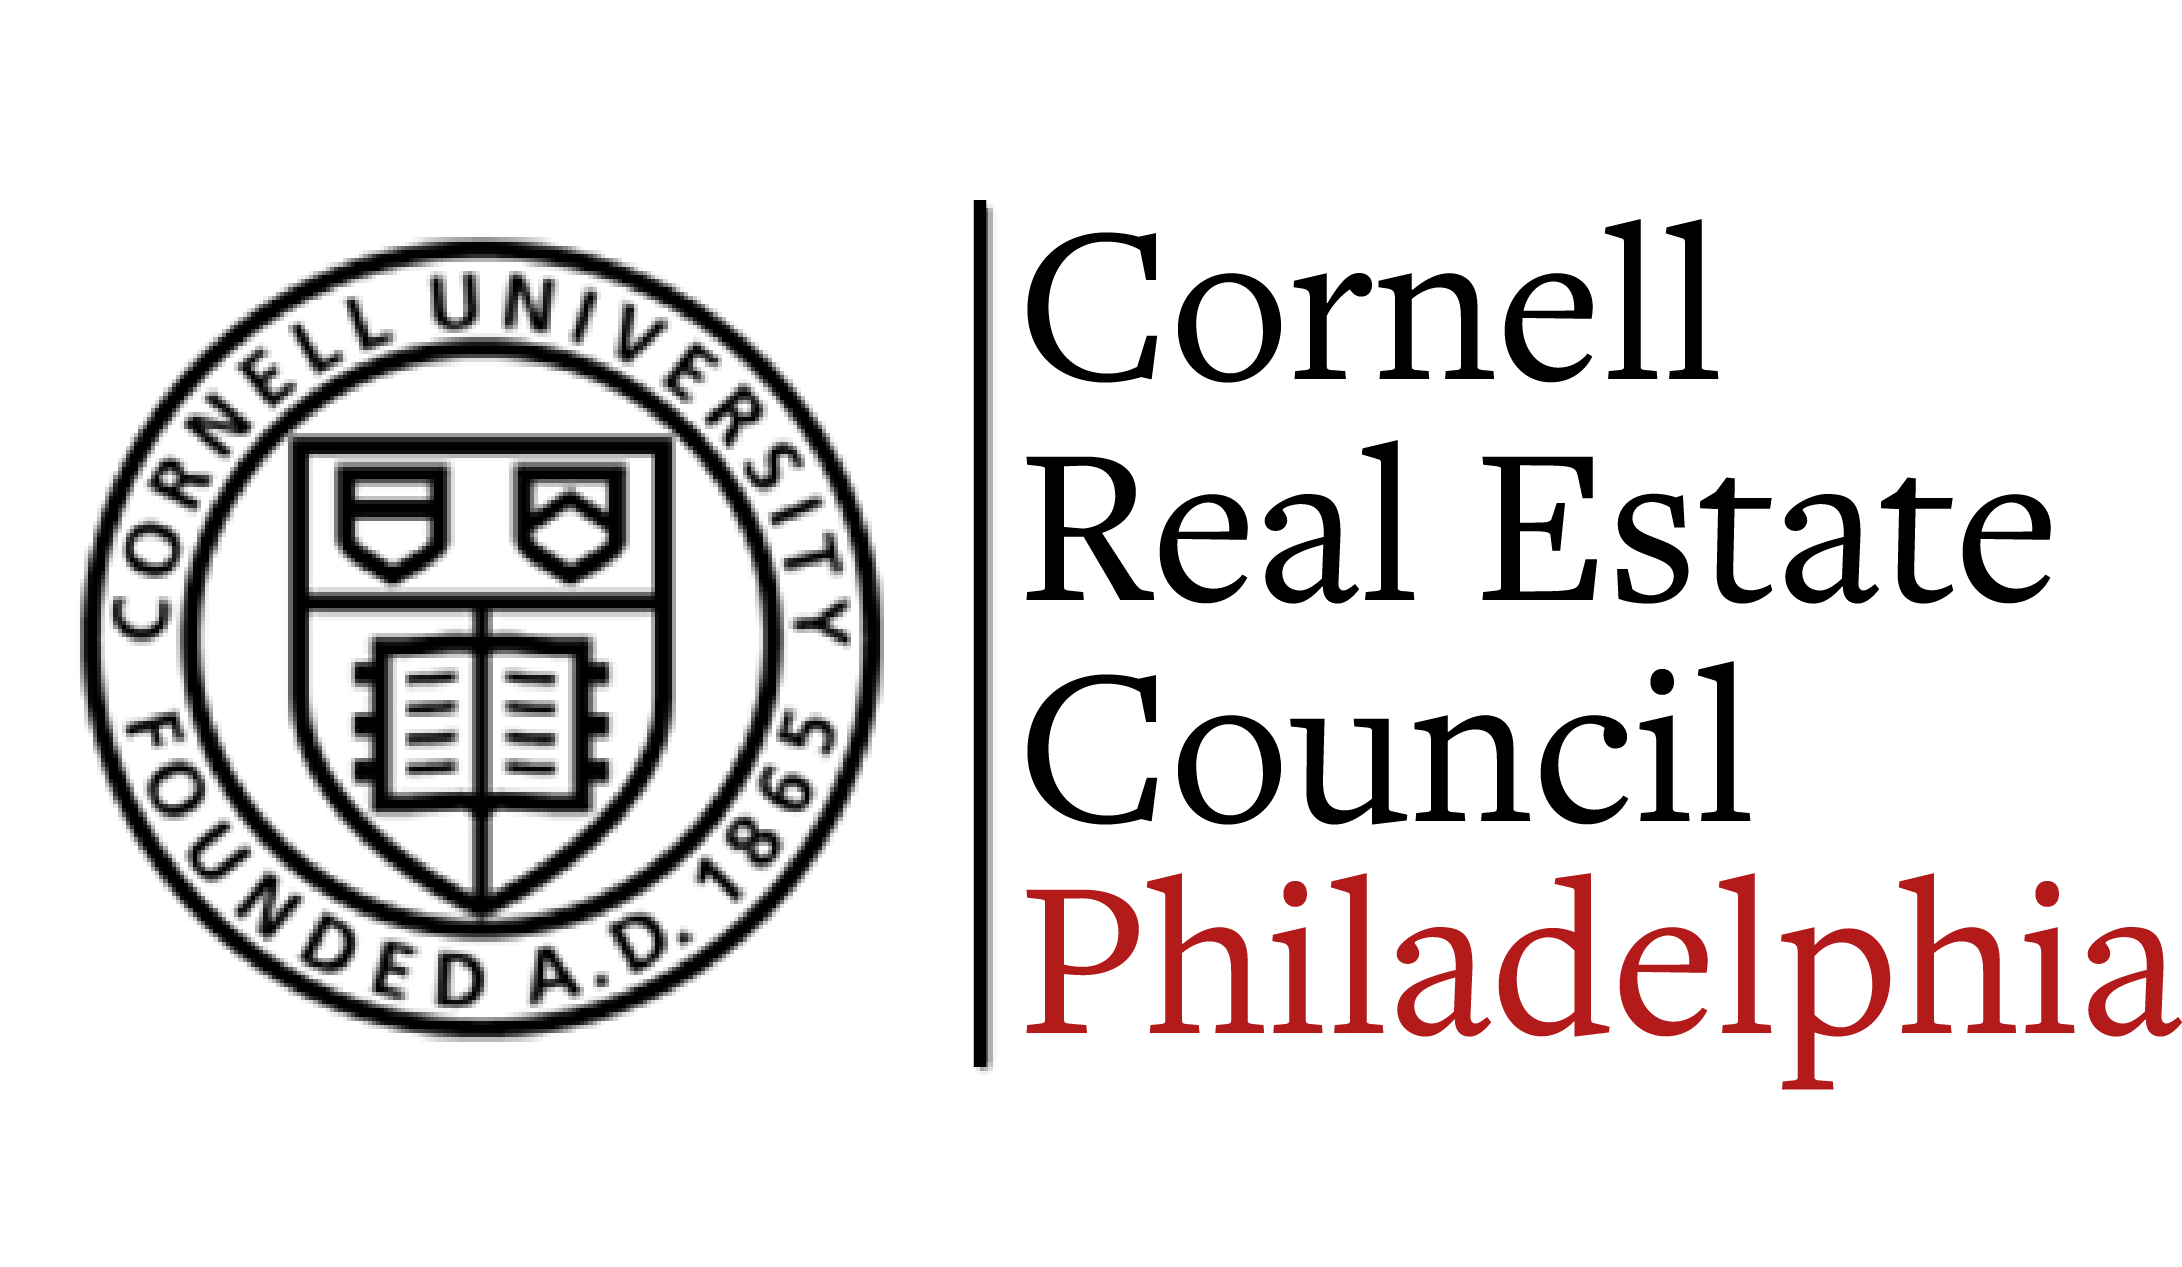 Cornell Real Estate Council - Philadelphia